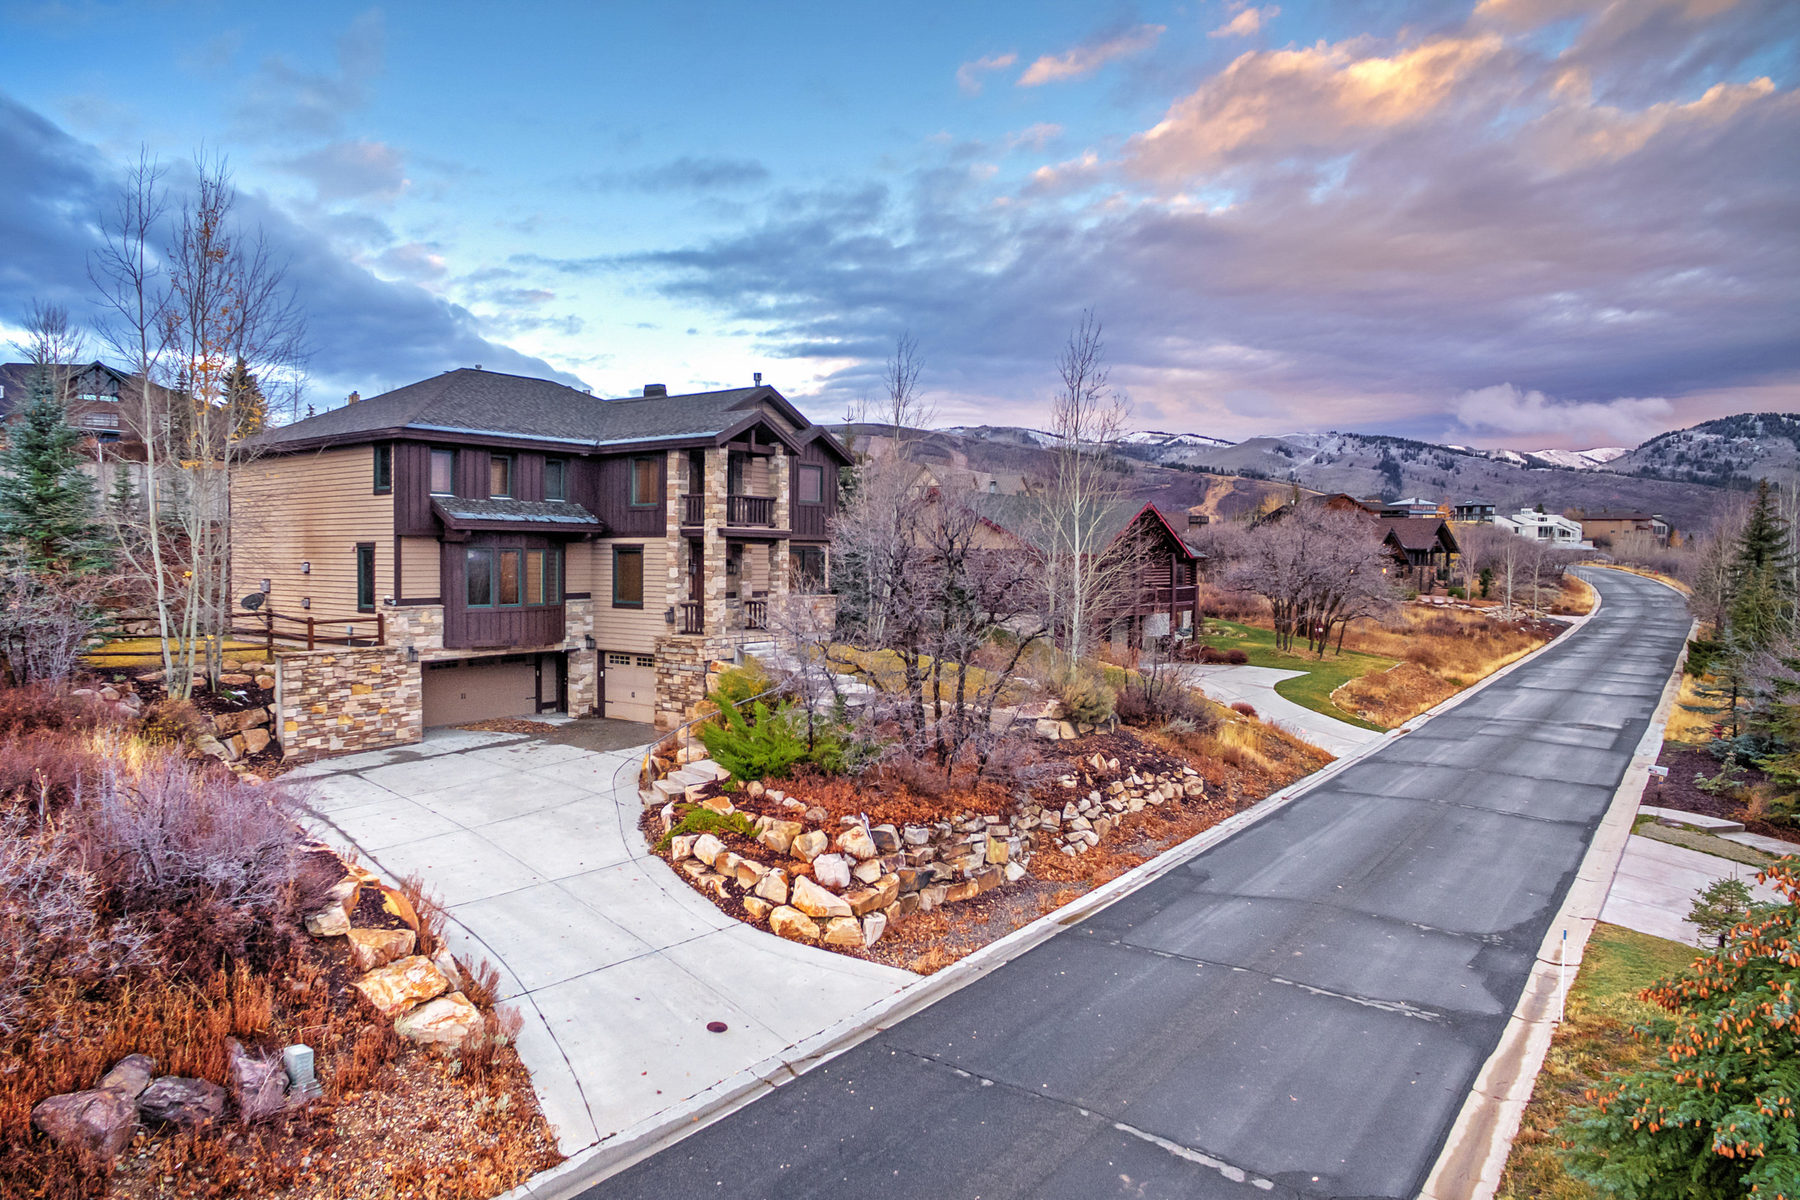 Single Family Home for Sale at Custom Mountain Home in Coveted Aerie 1539 Aerie Dr Park City, Utah, 84060 United States